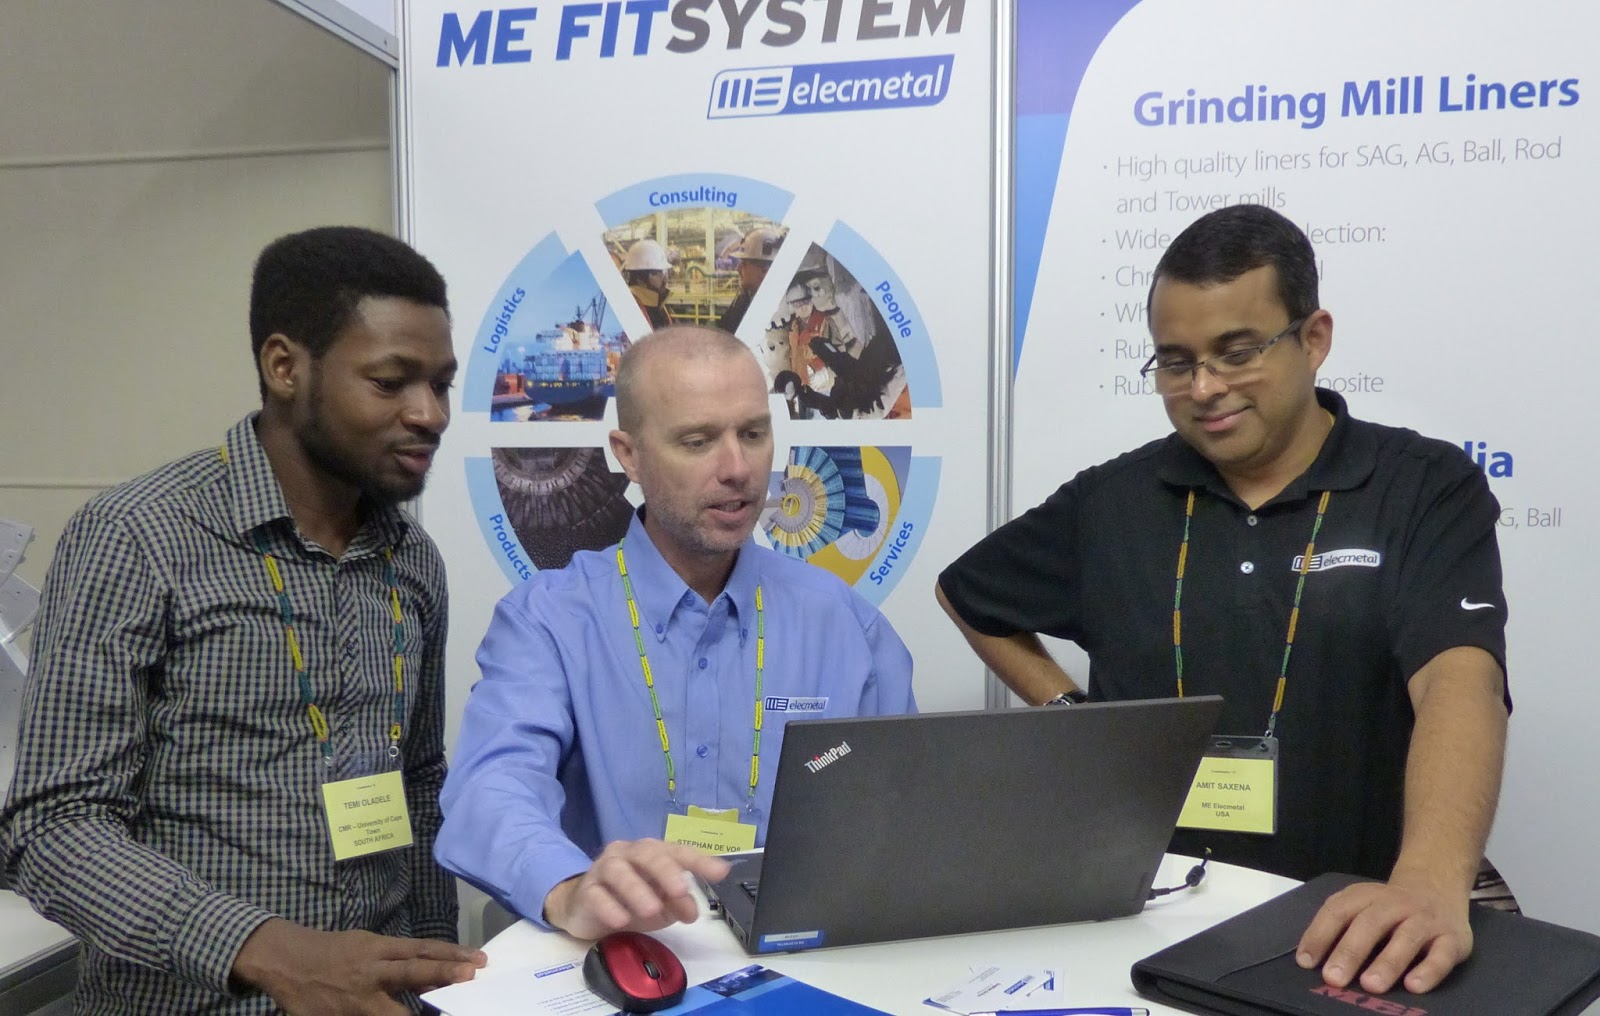 Mei Blog Comminution 18 Conference Diary Digital Control Lab Ag Sag Ball Mill Optimization And Process Temitope Oladele With Stephan De Vos Amit Saxena Of Me Elecmetal An American Company Exhibiting For The First Time At